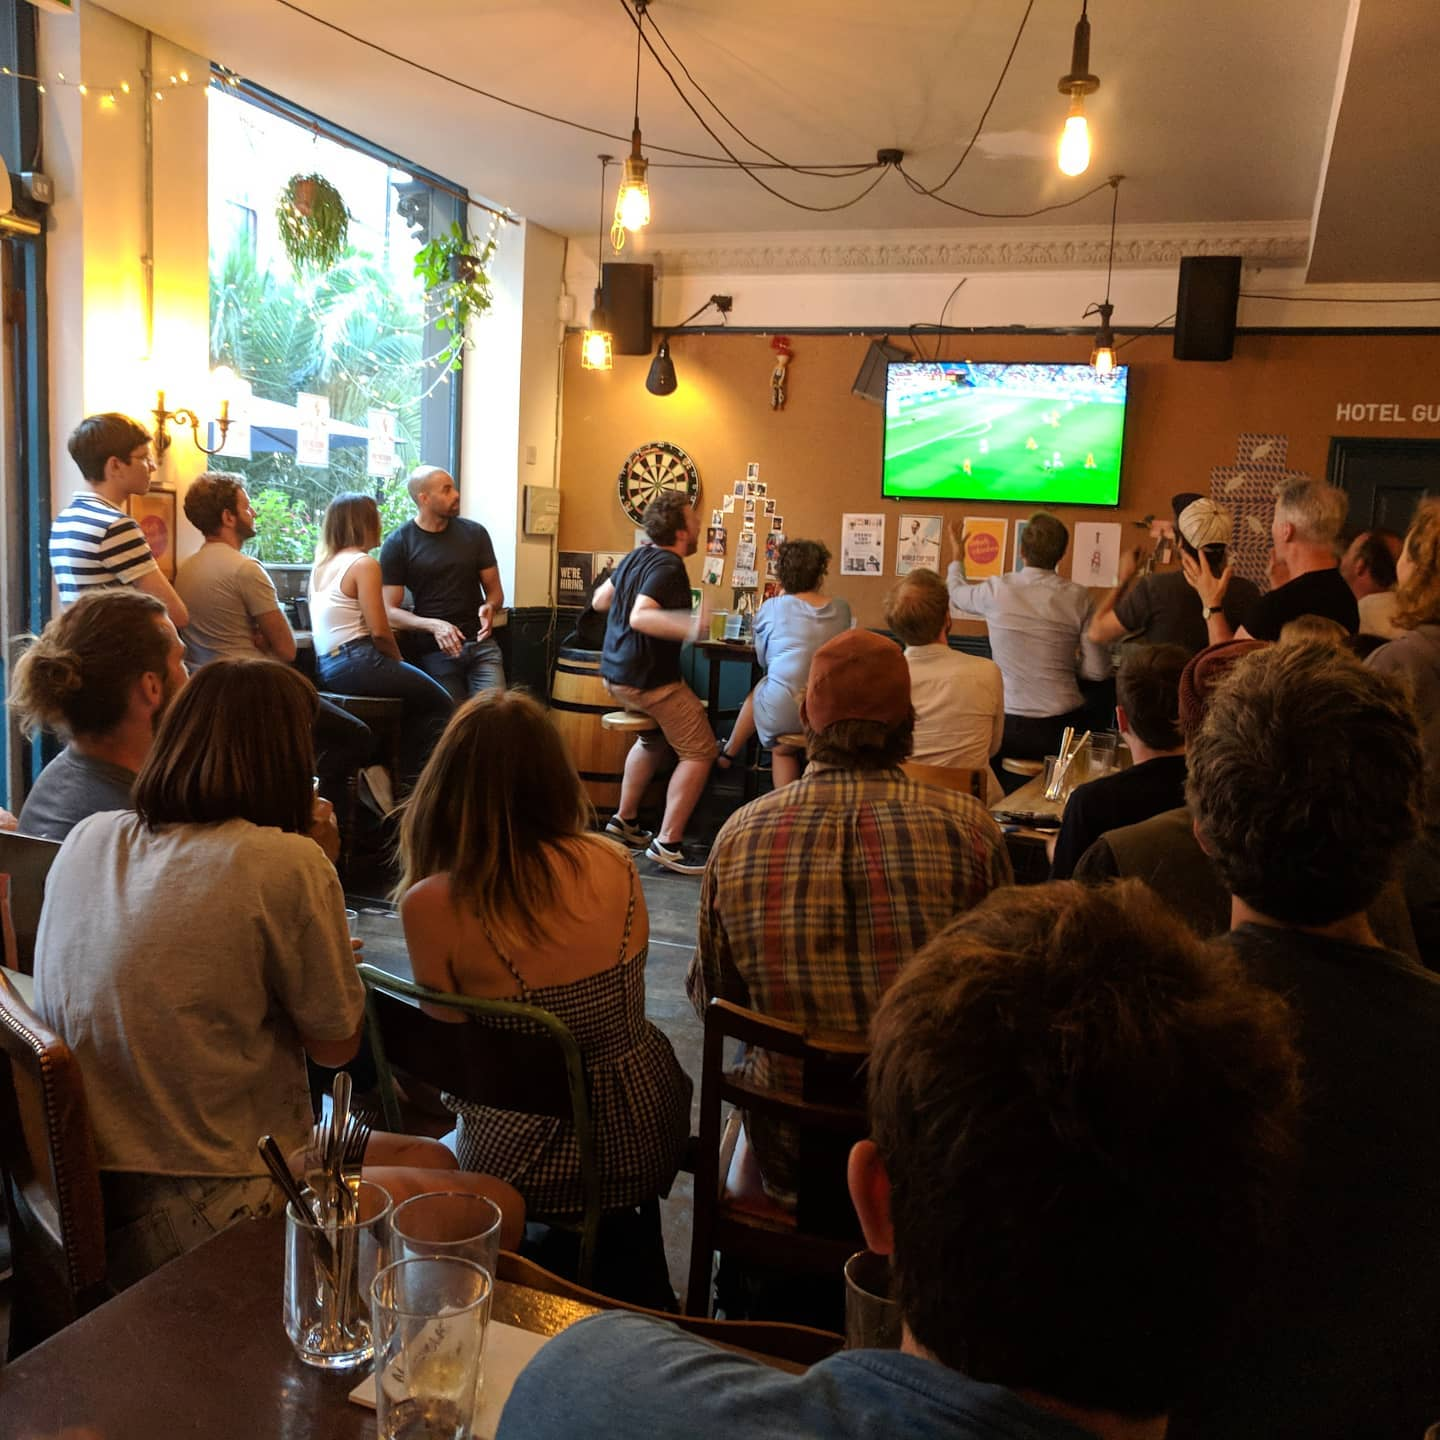 Euros is just around the corner! 11th June - 11th July. ⚽  For whoever you support, we'll be showing every game we're able to! 🏆  England days are booking up fast so get in there quick.  #linkinbio👆  . . . #euros2020 #euros2021london #football #showingallfixtures #londonfootball #footy #hackneypubs #welovehackney #pintspintspints